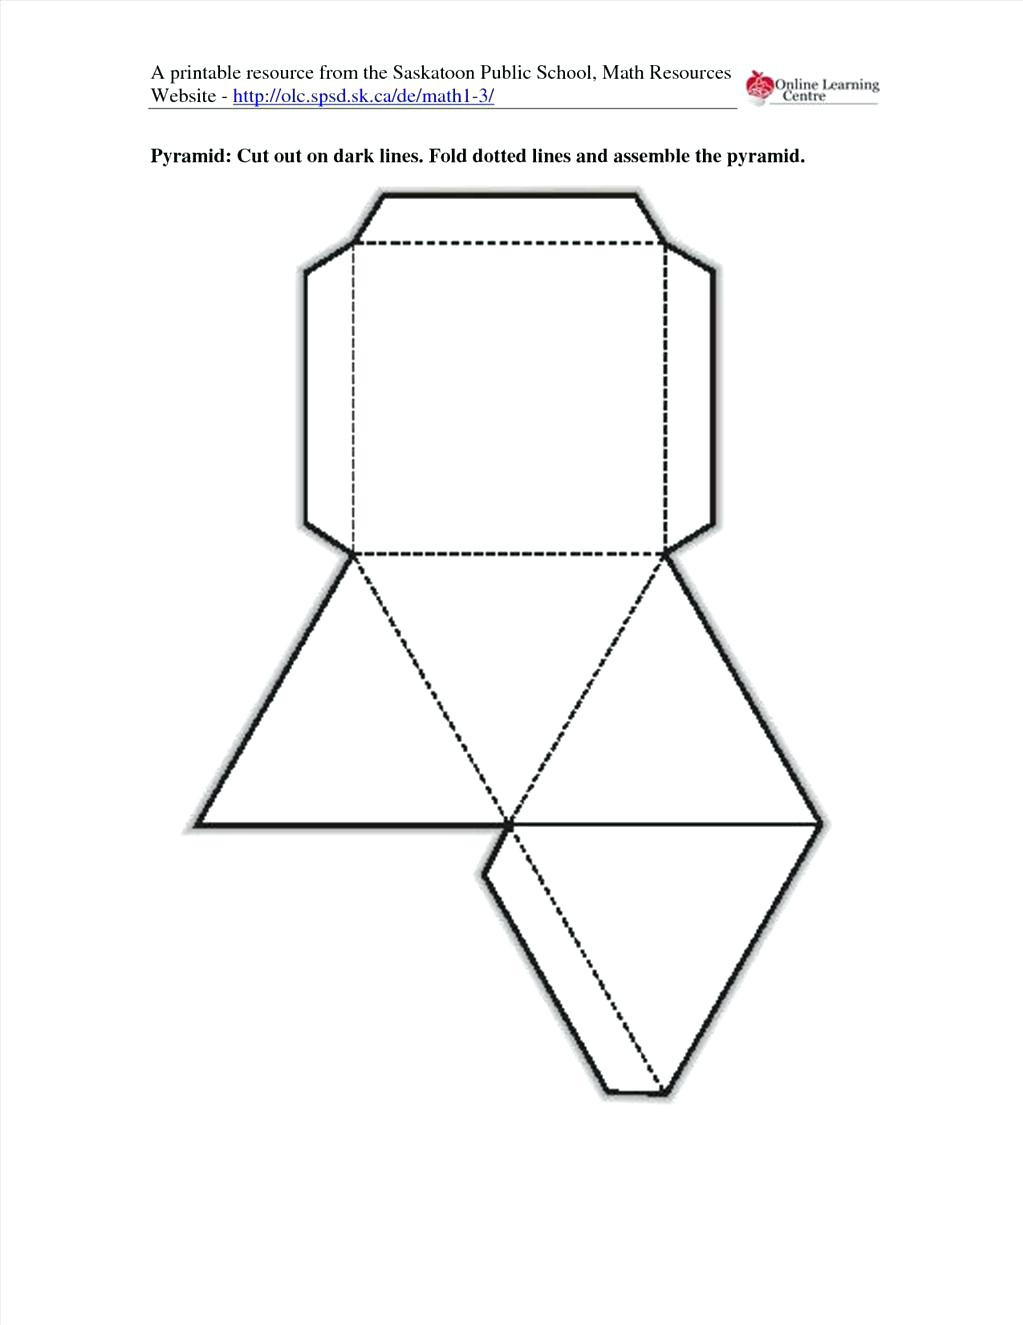 Geometry Template Printable Best Printable Shapes to Cut Out